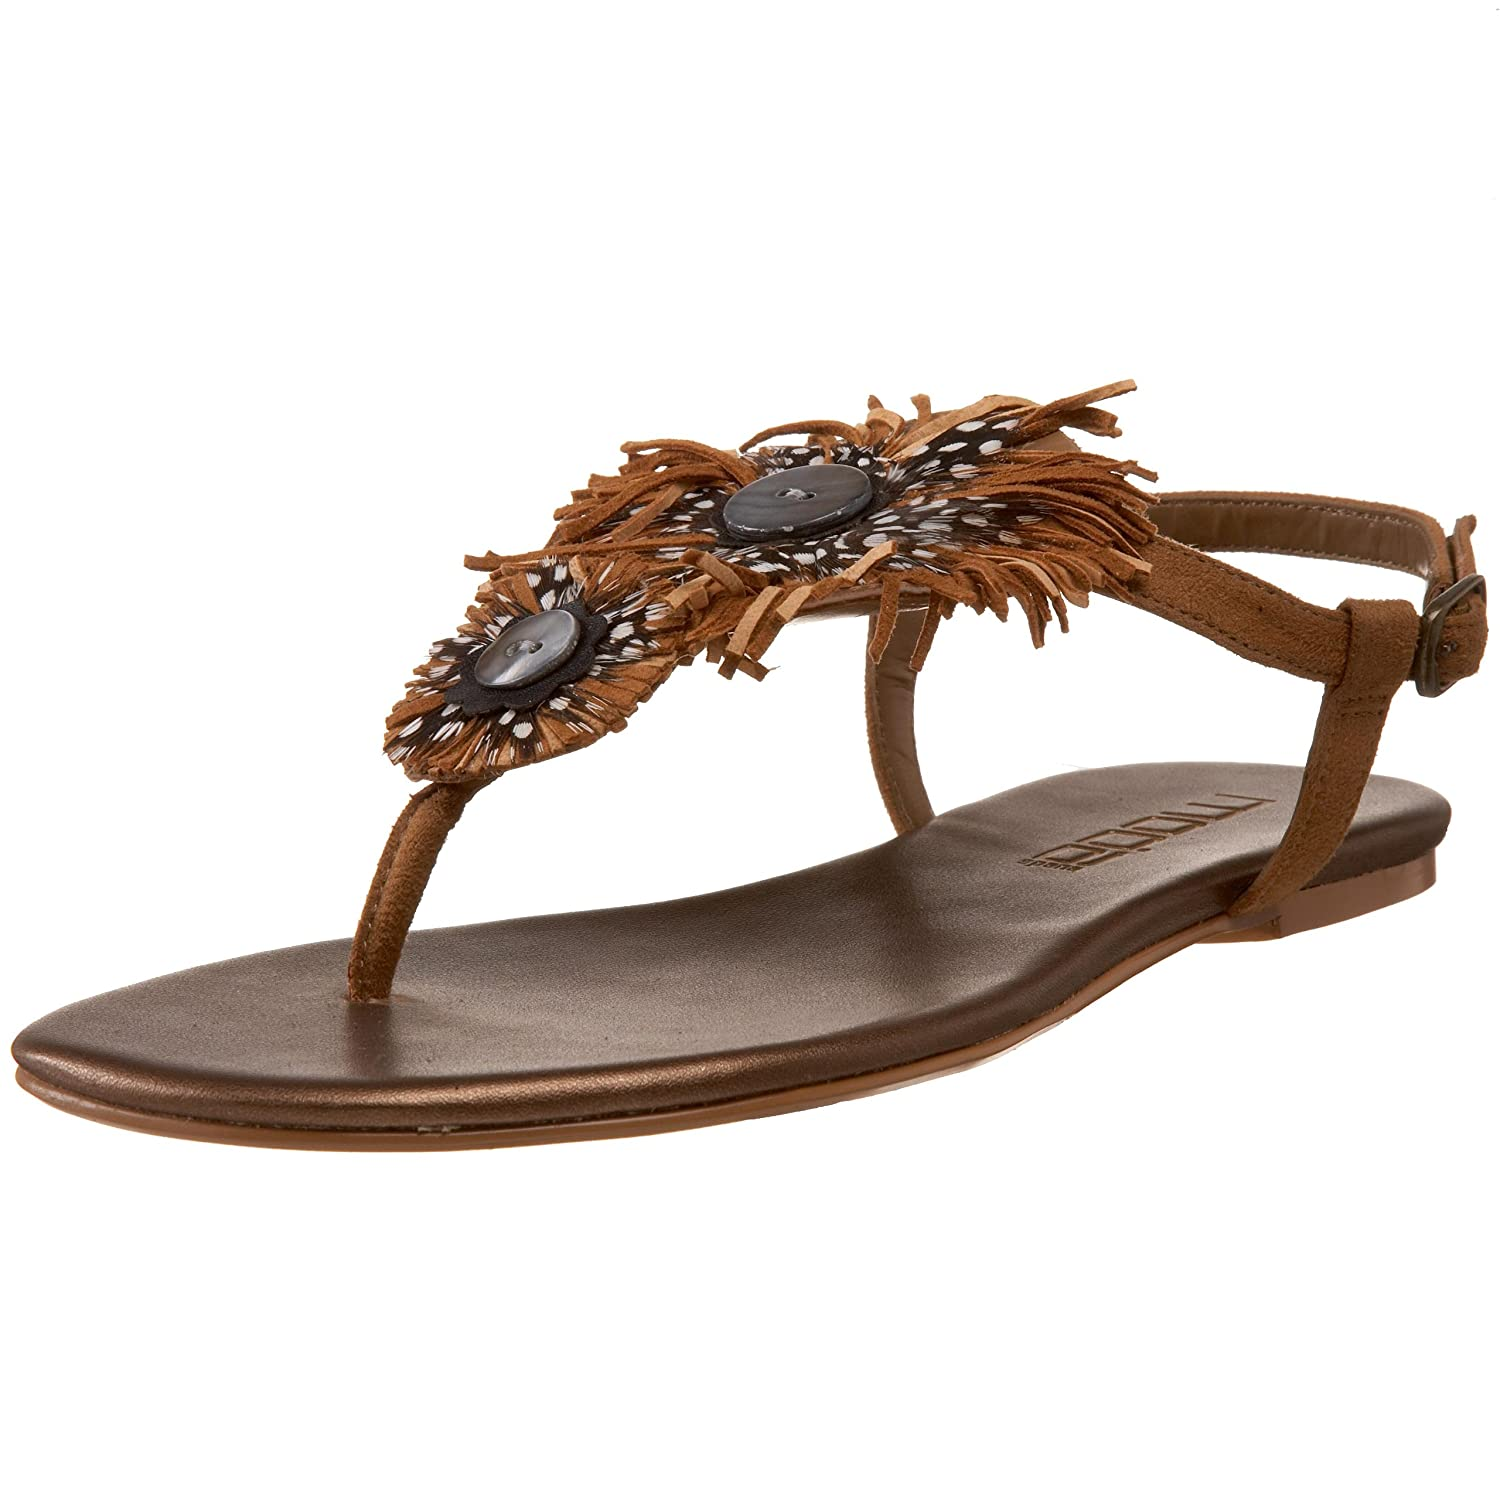 Moda Spana Women s Jerash Sandal from endless.com